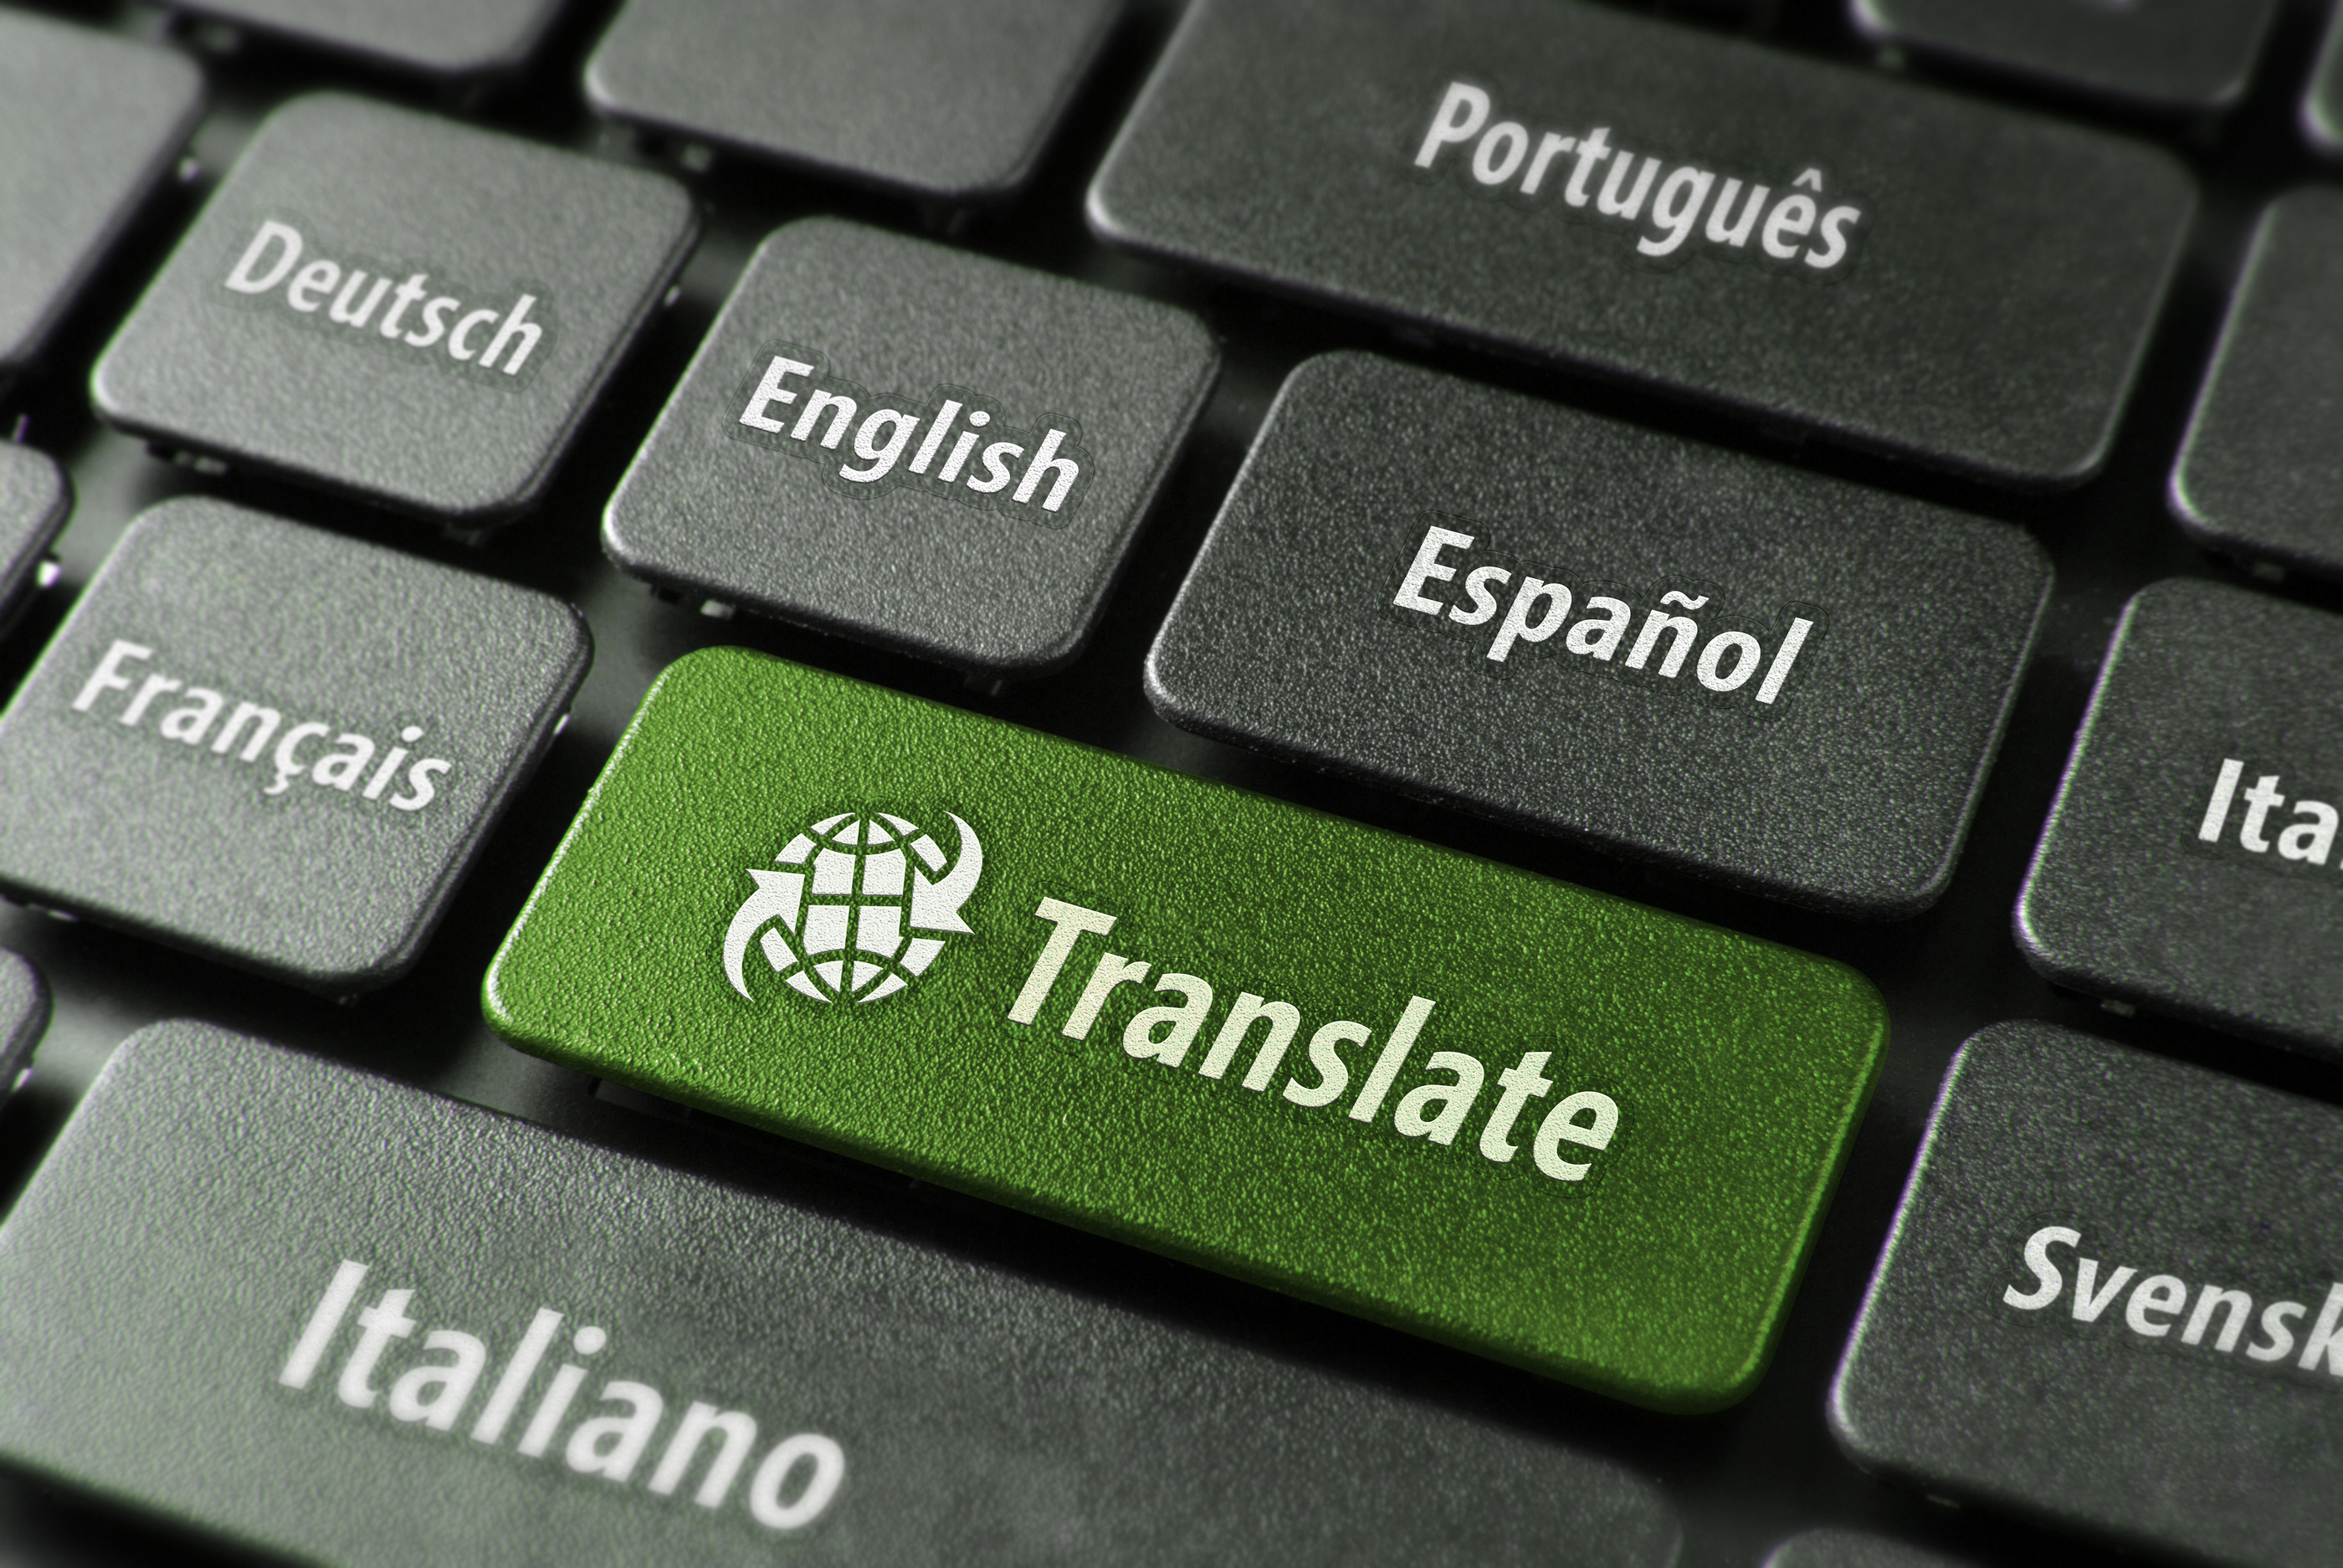 I will translate from English to Spanish and vice versa